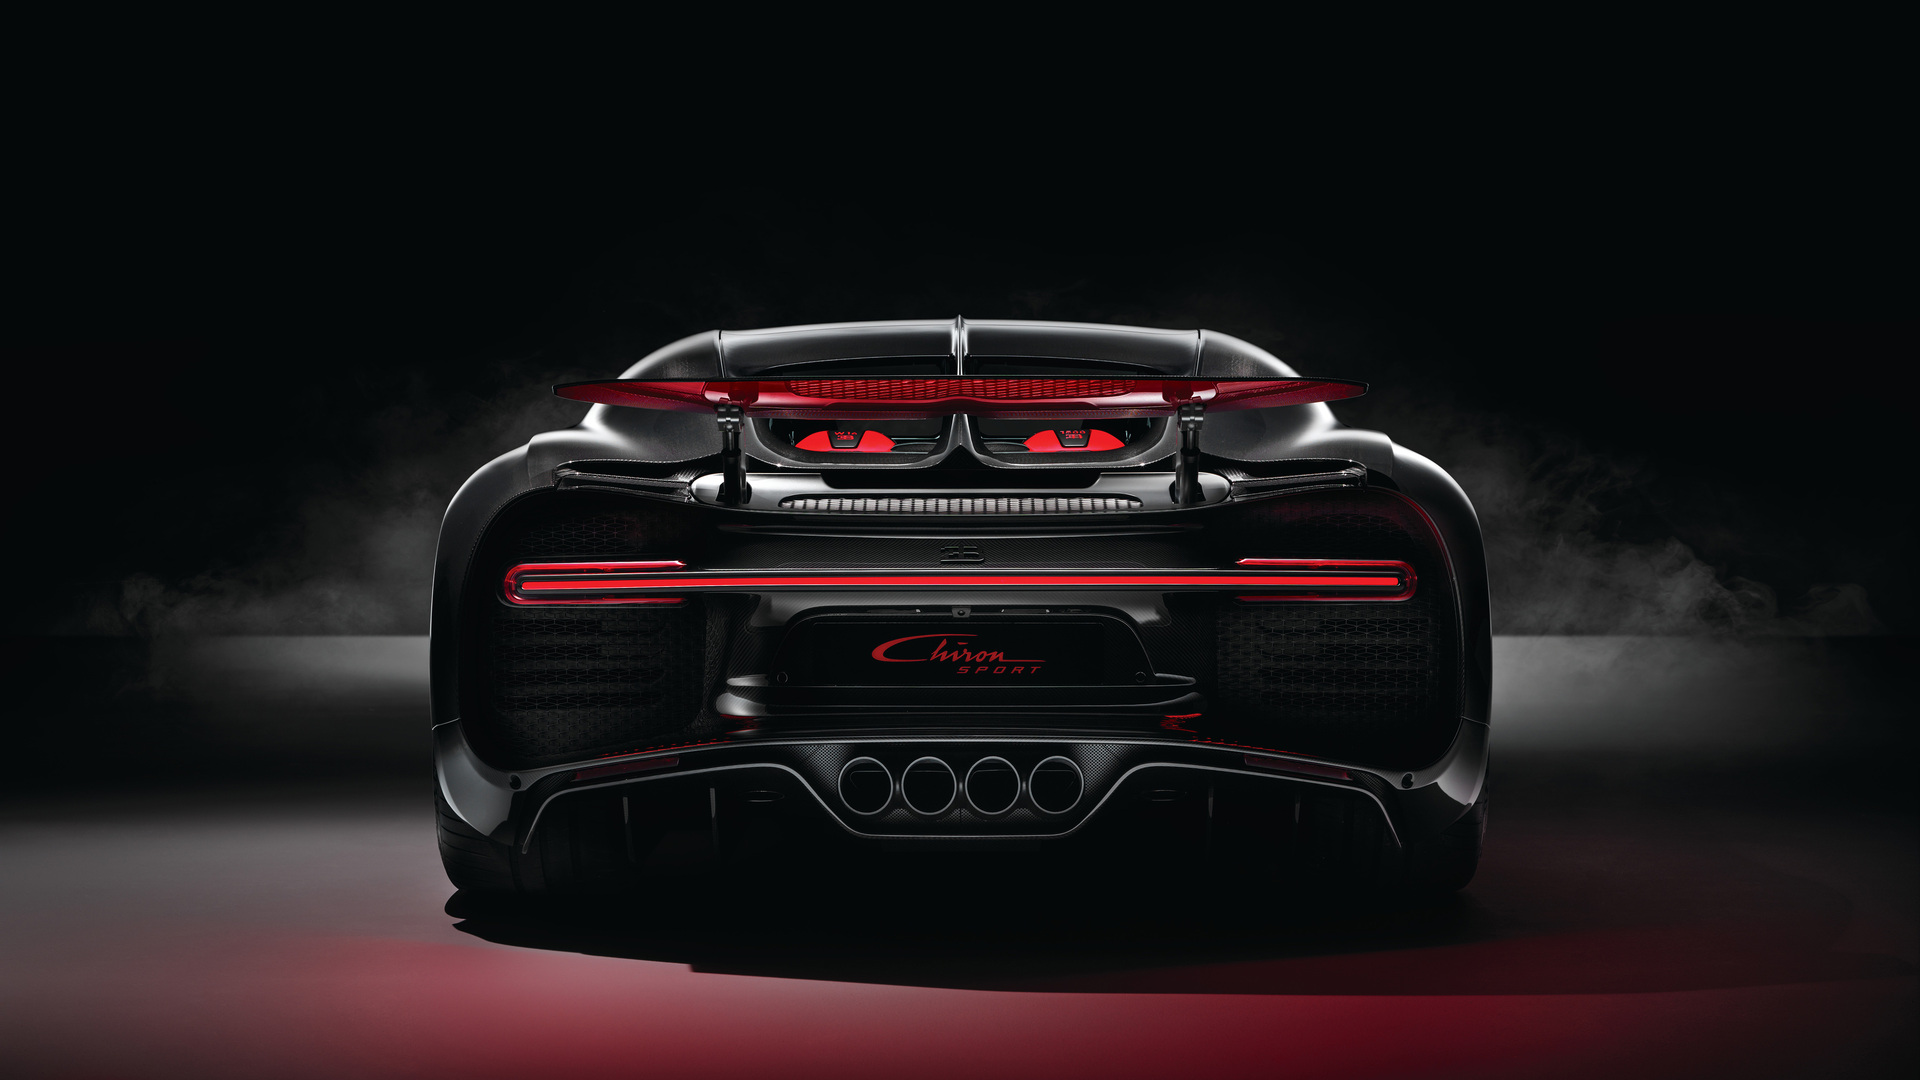 1920x1080 Bugatti Chiron Sport 2018 Rear Lights 4k Laptop Full Hd